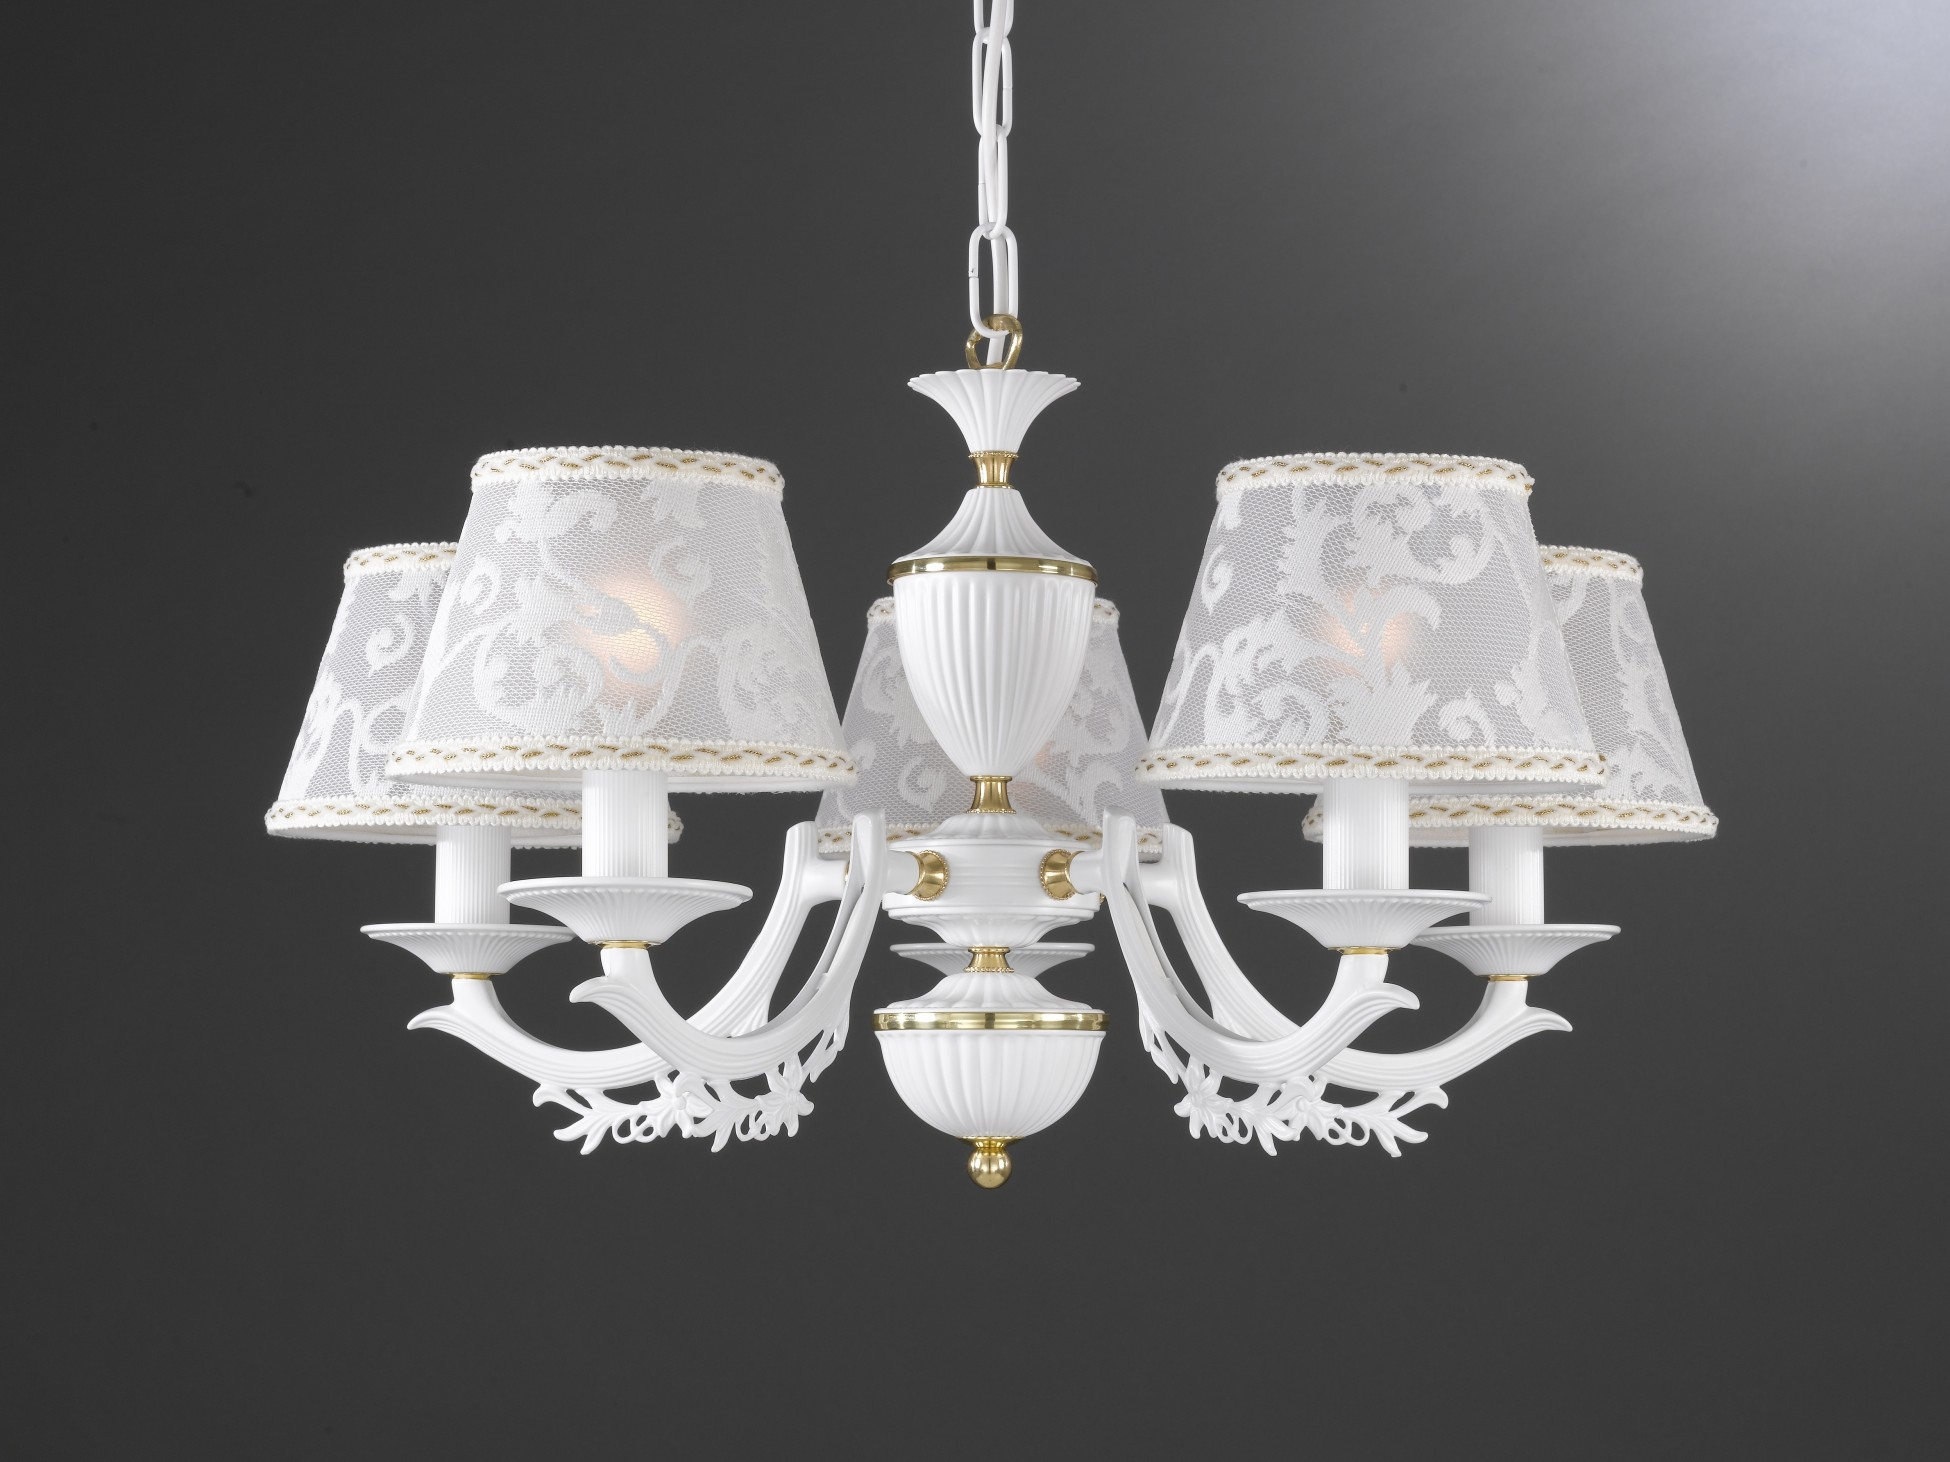 Chandeliers With L Shades 3 Lights Brass Wood And Glass